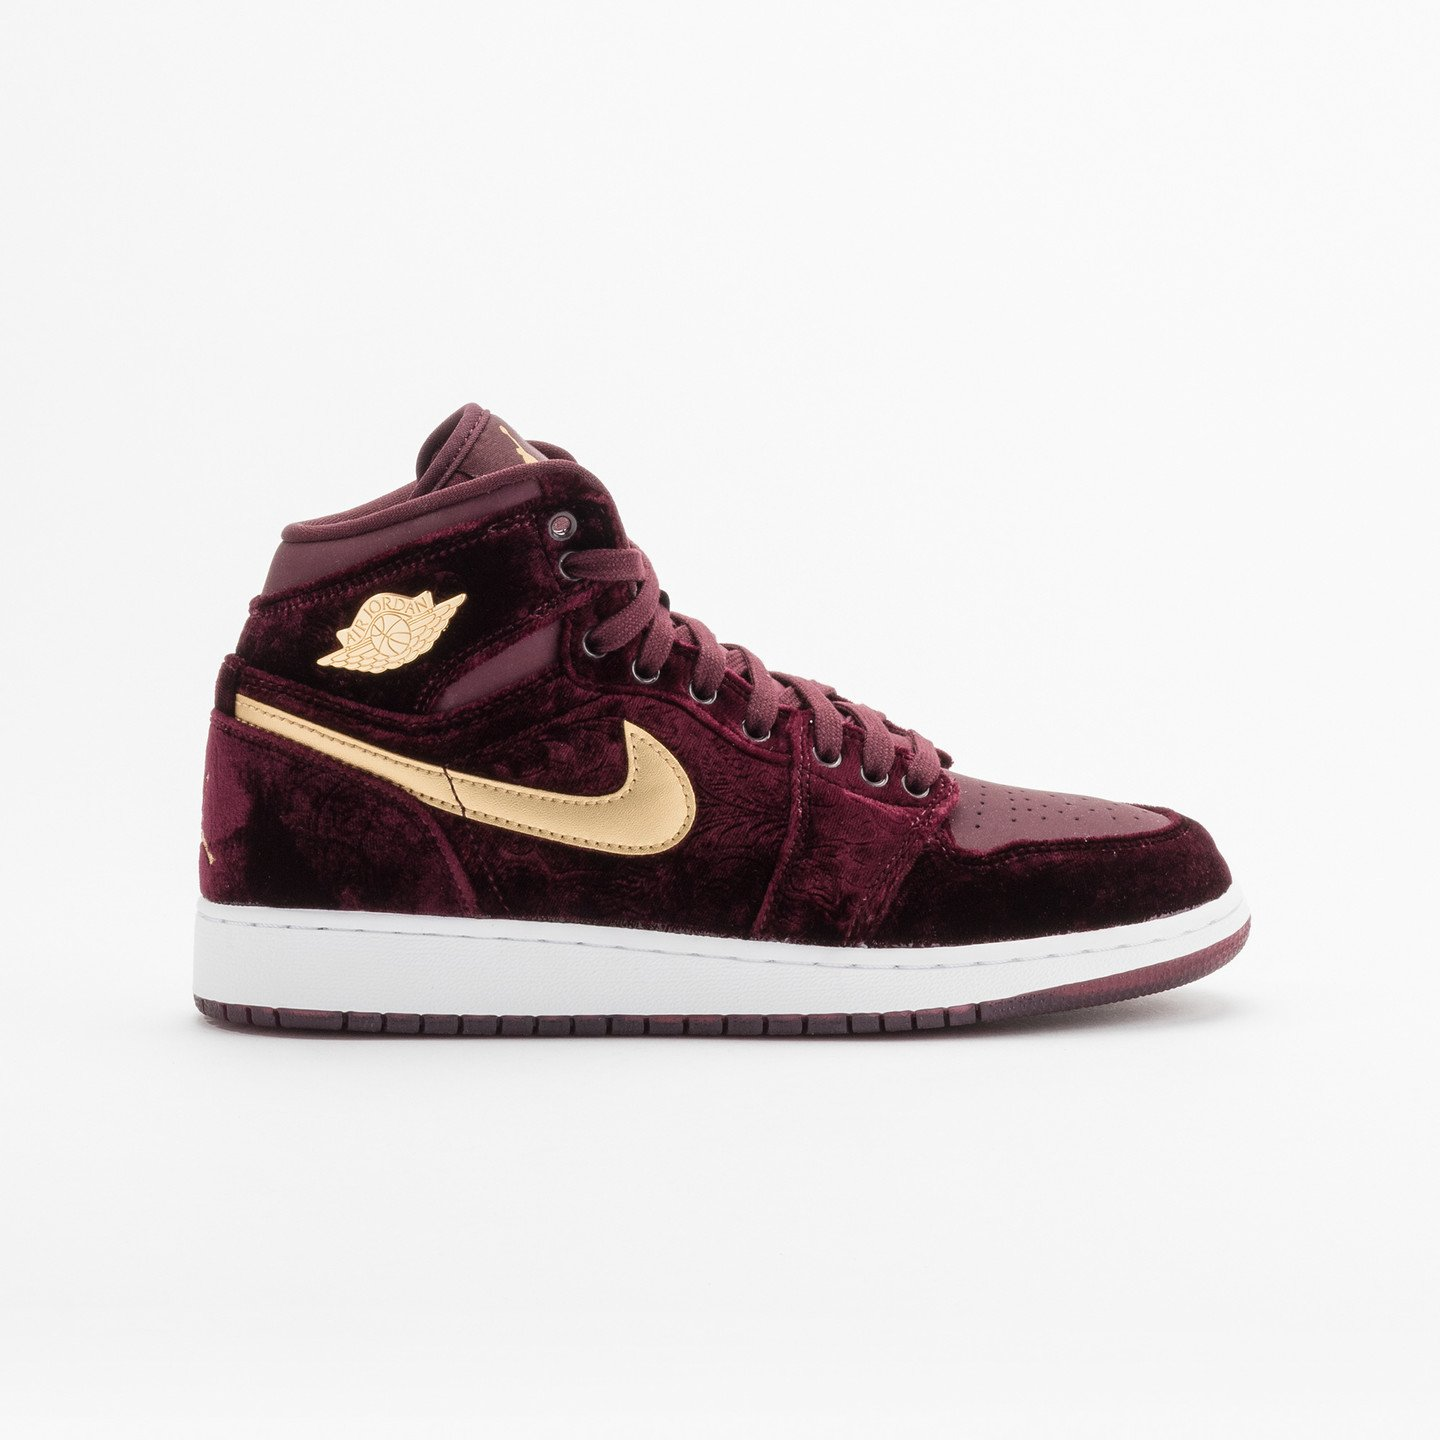 Jordan Air Jordan 1 Retro High Premium 'Heiress' GS Night Maroon / Metallic Gold / White 832596-640-39